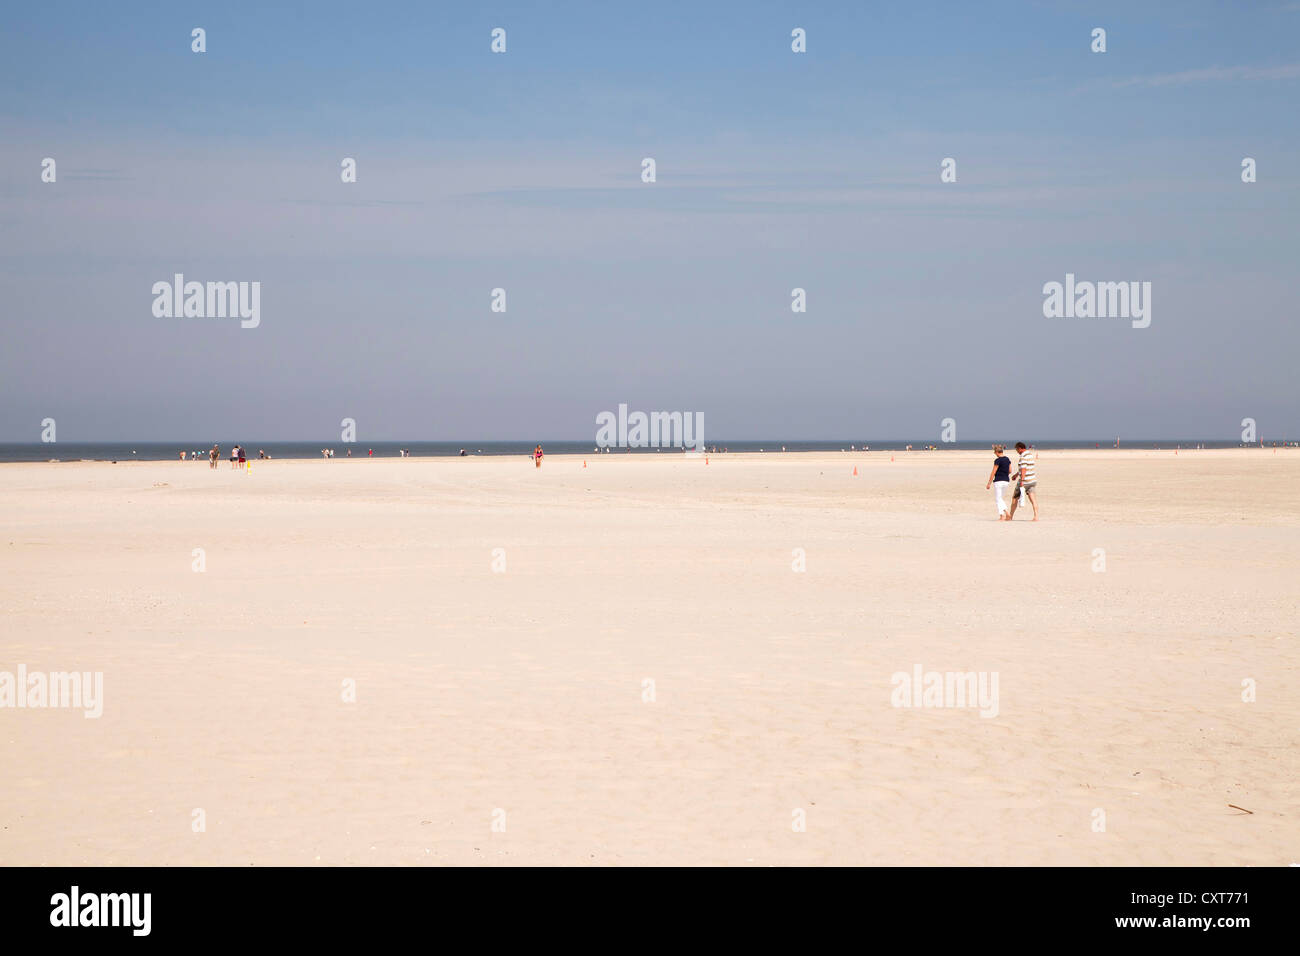 The long wide sandy beach of St. Peter-Ording, district of North Friesland, Schleswig-Holstein - Stock Image